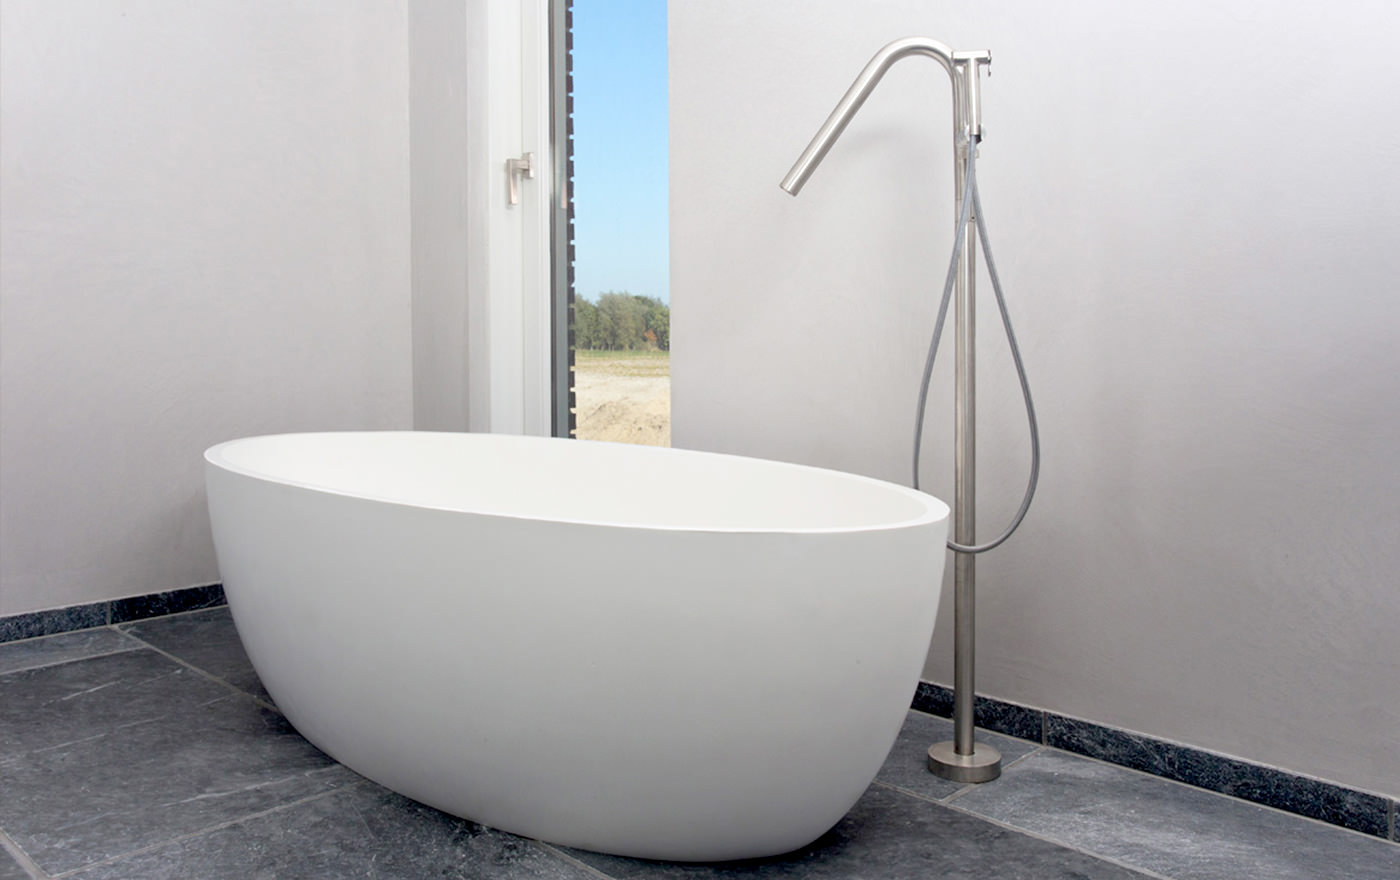 cocoon-large-bathtub-large-tub-design-tub-bath-column-stainless-steel-bath-mixer-grey-tiles-bathroom